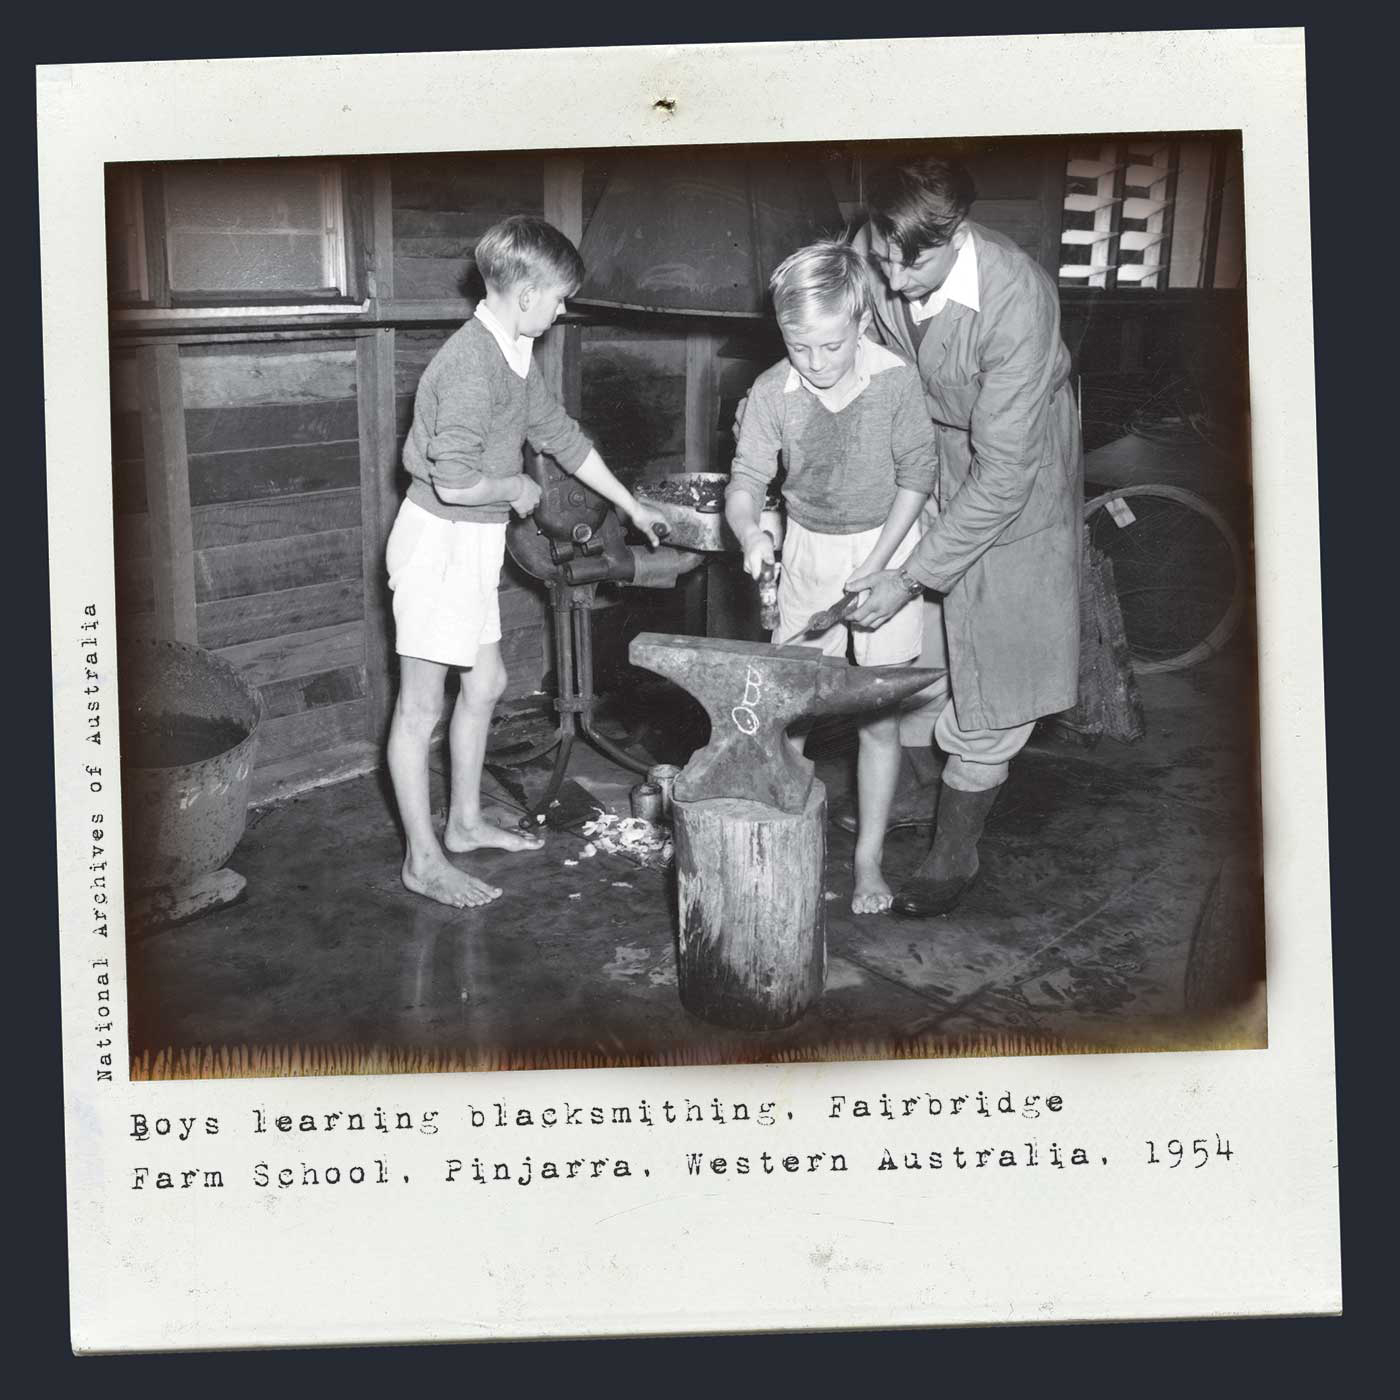 Polaroid photograph showing two young boys and an older man. The boys are barefoot and wear uniform jumpers and shorts. A man in a grey dustcoat stands over one of the boys, helping him hammer a piece of metal at an anvil. The other boy works the forge at the rear. Typewritten text below reads 'Boys learning blacksmithing, Fairbridge Farm School, Pinjarra, Western Australia, 1954'. 'National Archives of Australia' is typed along the left side. - click to view larger image